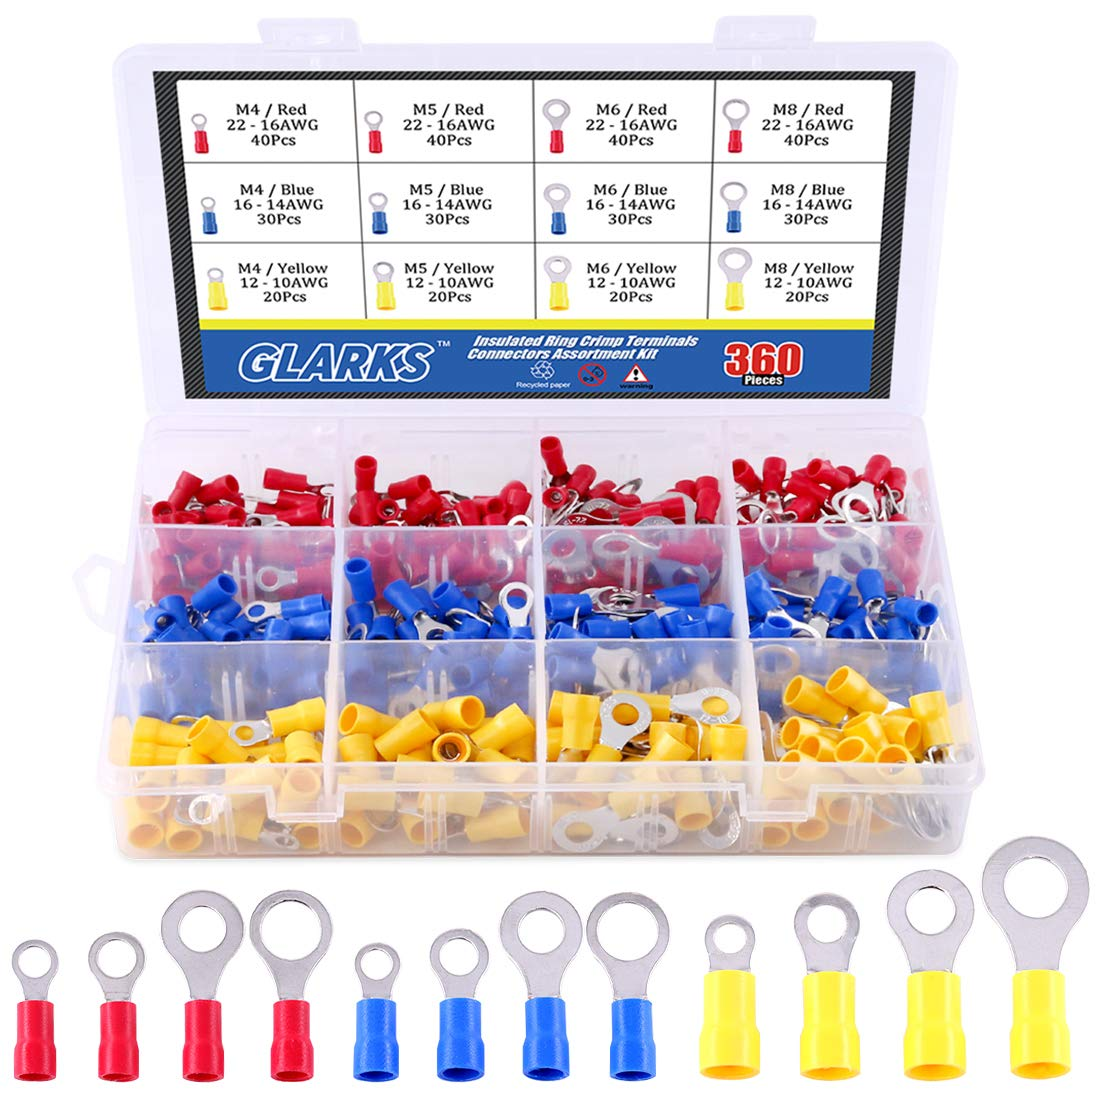 Glarks 360pcs 22-16/16-14/12-10 Gauge Mixed Quick Disconnect Electrical Insulated M4 / 5/6 / 8 Ring Crimp Terminals Connectors Assortment Kit by Glarks